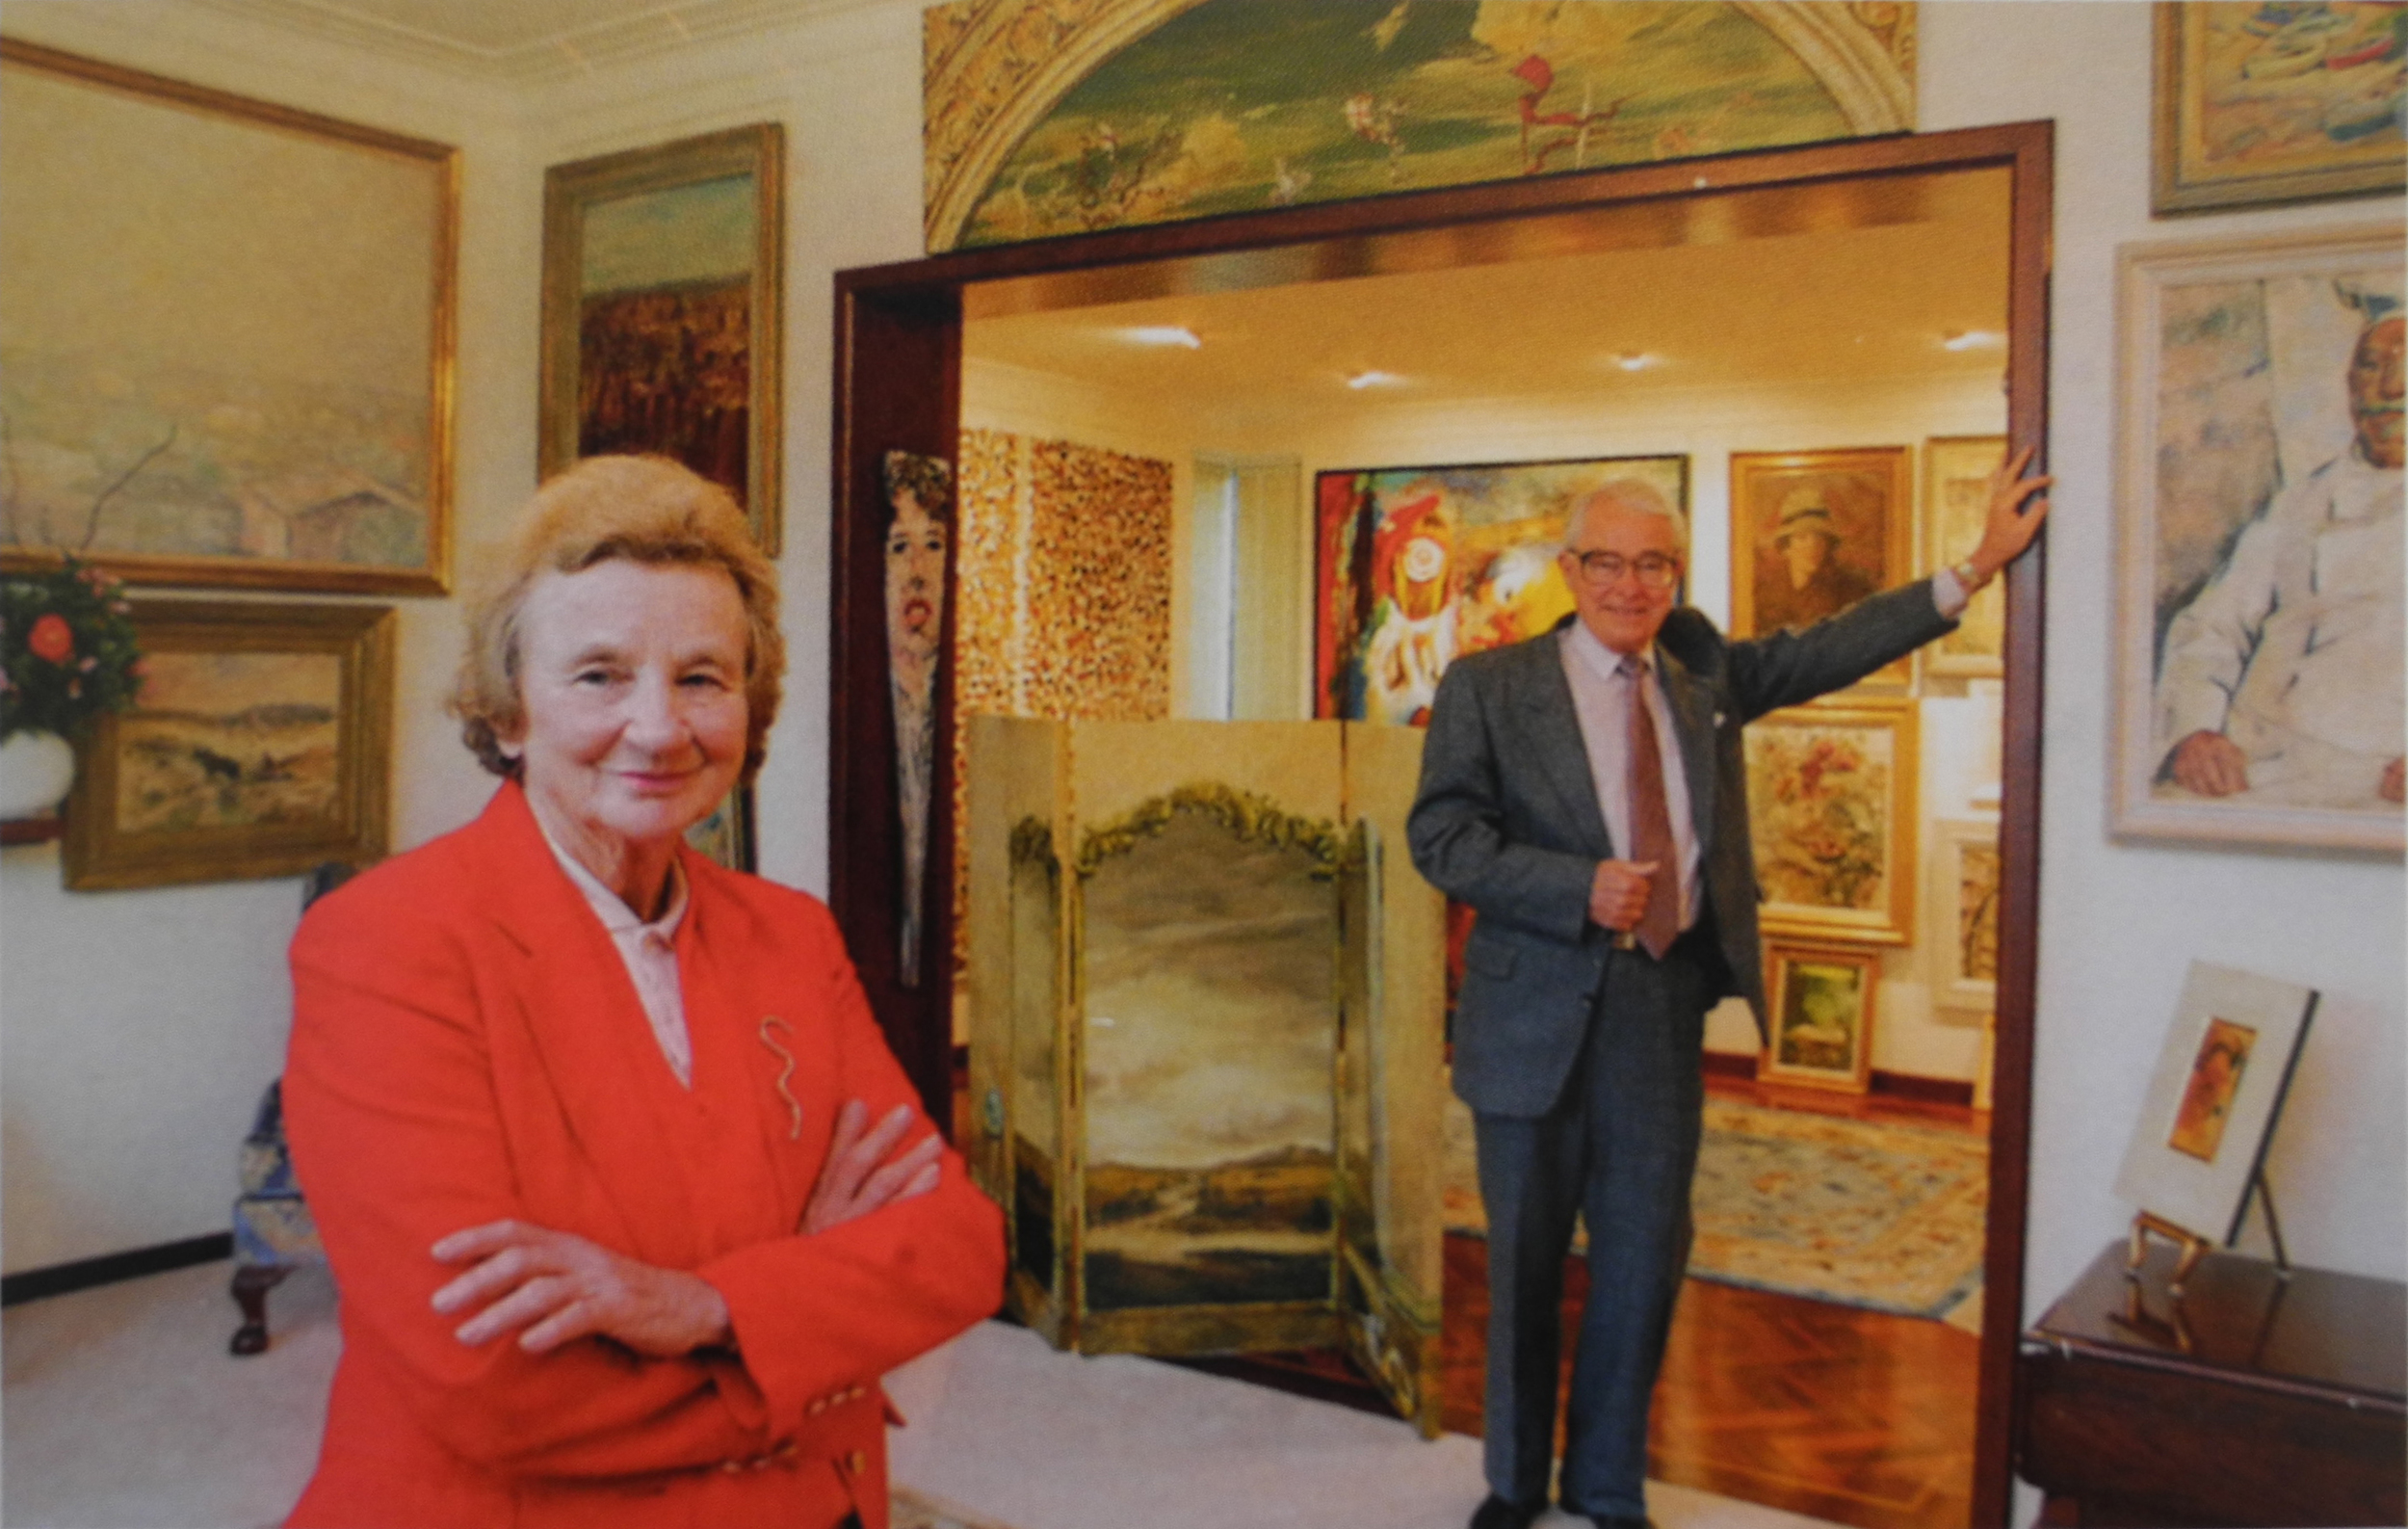 Sheila and Jim in the lounge room of the new family home in Bird Street, 1995.Photograph Richard Hatherly.Courtesy  The Sunday Times.